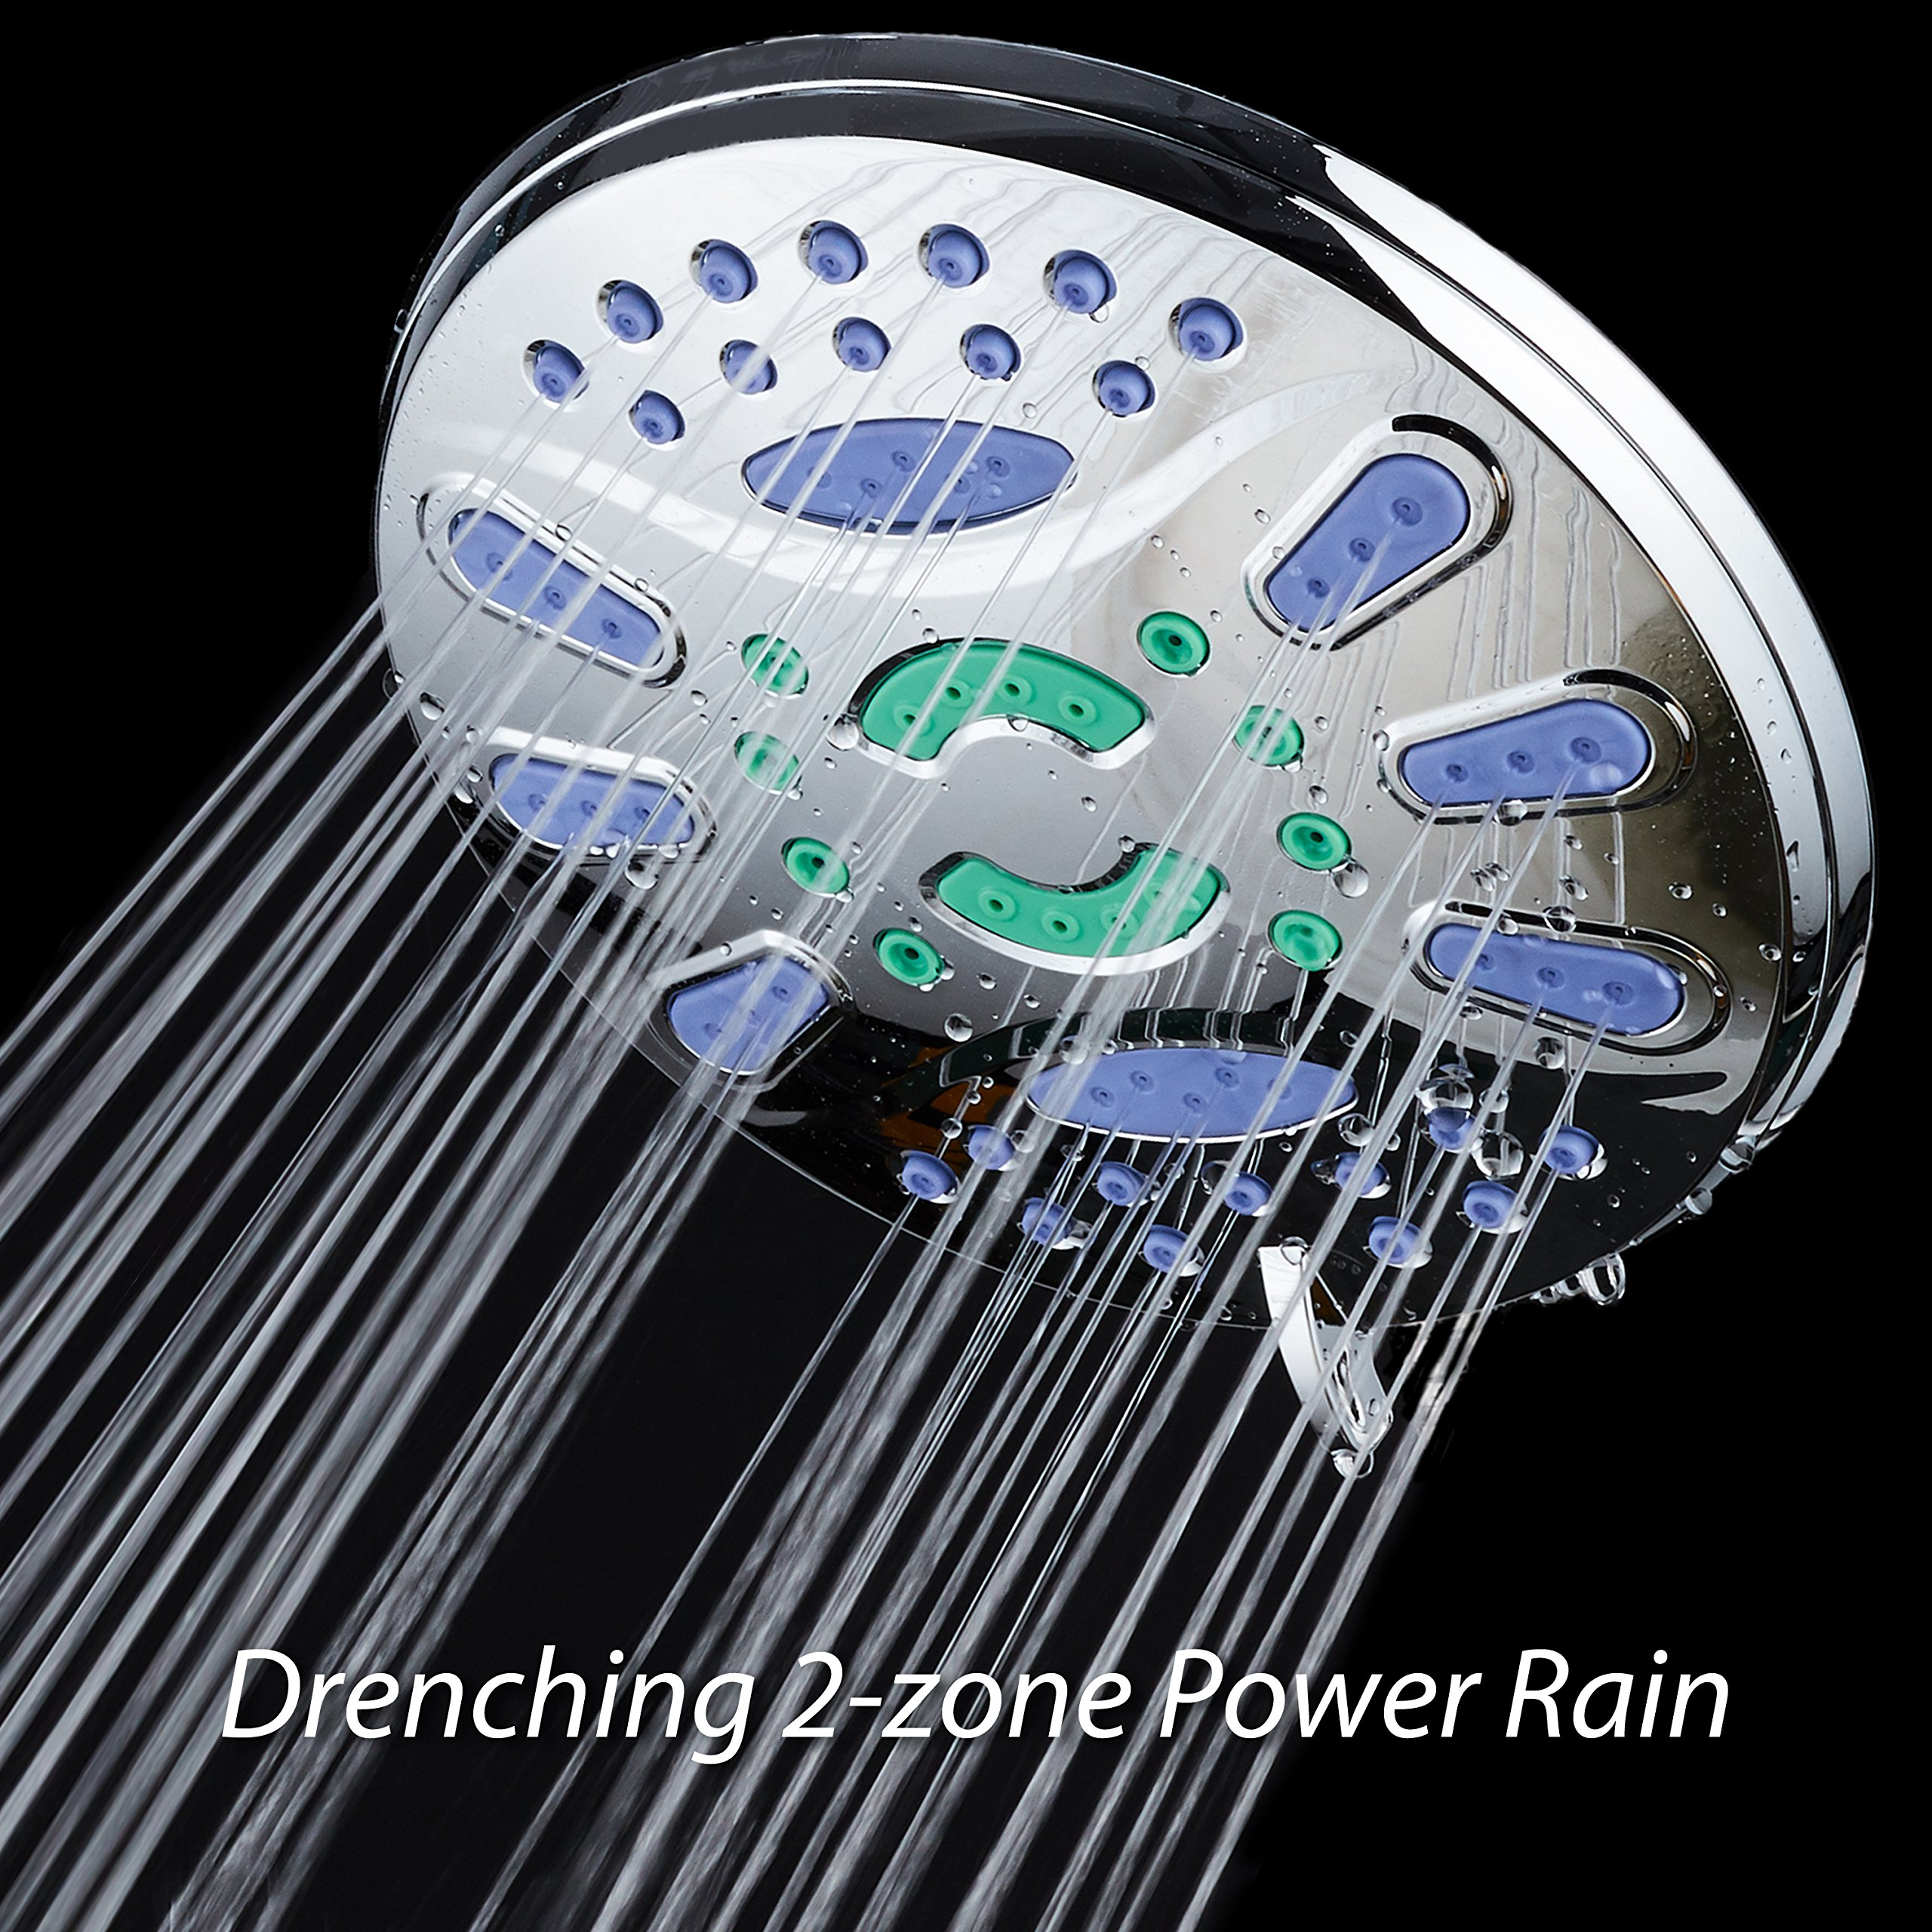 AquaStar Elite High-Pressure 7'' Giant 6-setting Luxury Spa Rain Shower Head with Microban Antimicrobial Anti-Clog Jets for More Power & Less Cleaning! / Solid Brass Ball Join/All Chrome Finish by AquaStar (Image #7)